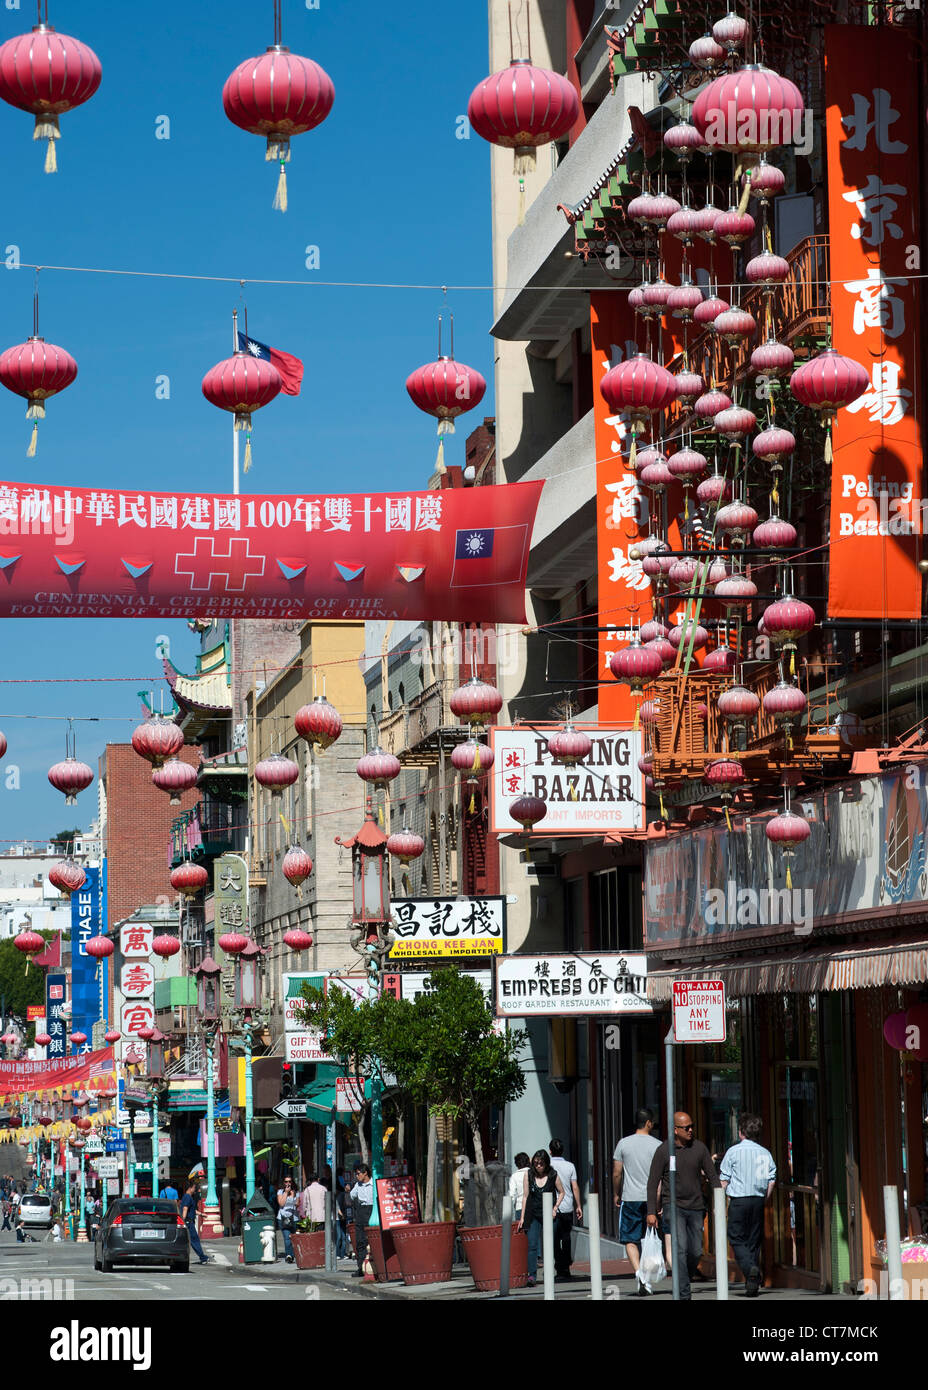 Grant Avenue in the Chinatown district of San Francisco, California, USA. - Stock Image